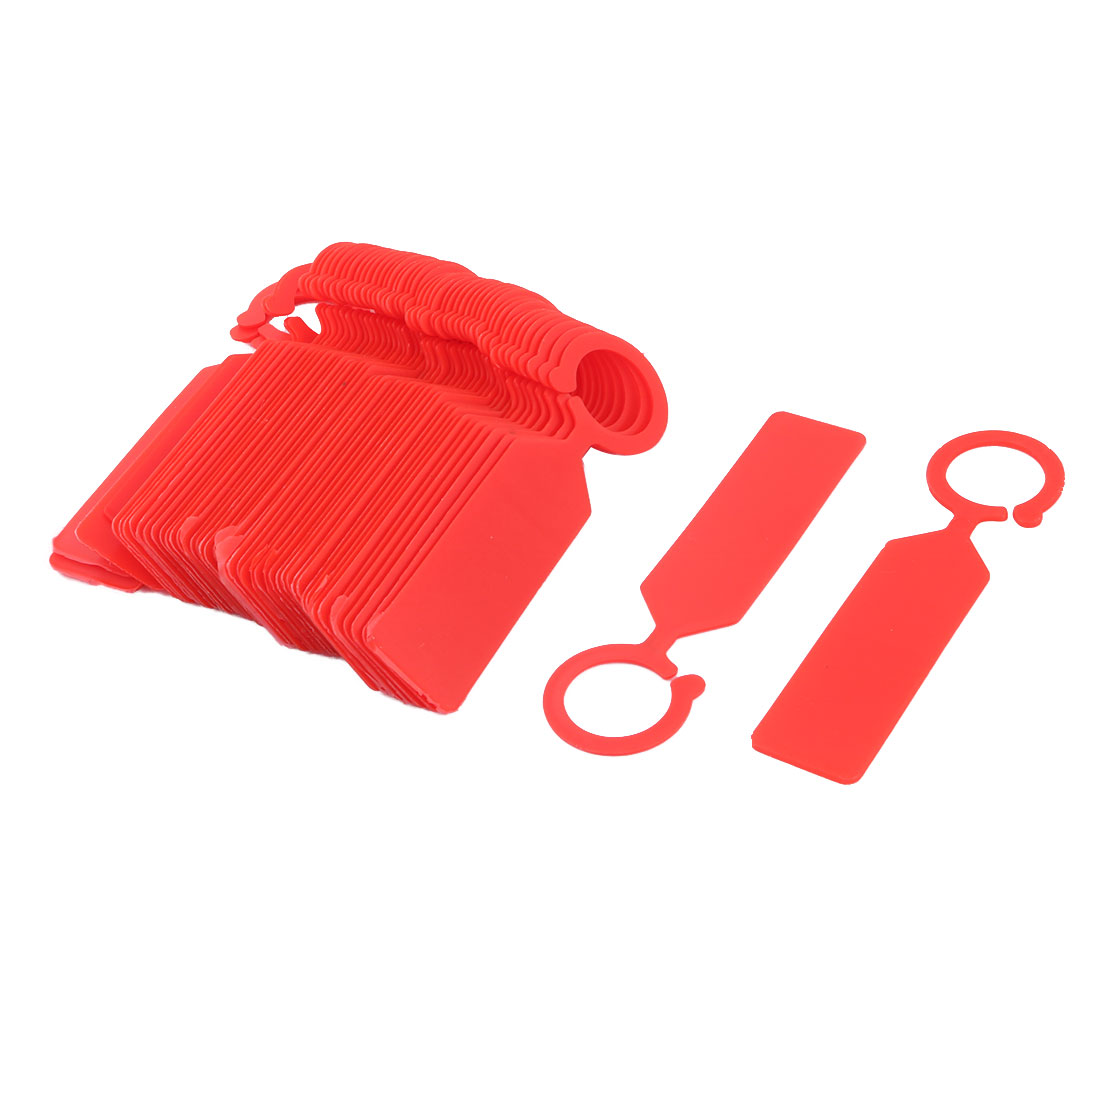 Family Outdoor Garden Plastic Seed Name Marking Tag Label Marker Red 50 Pcs